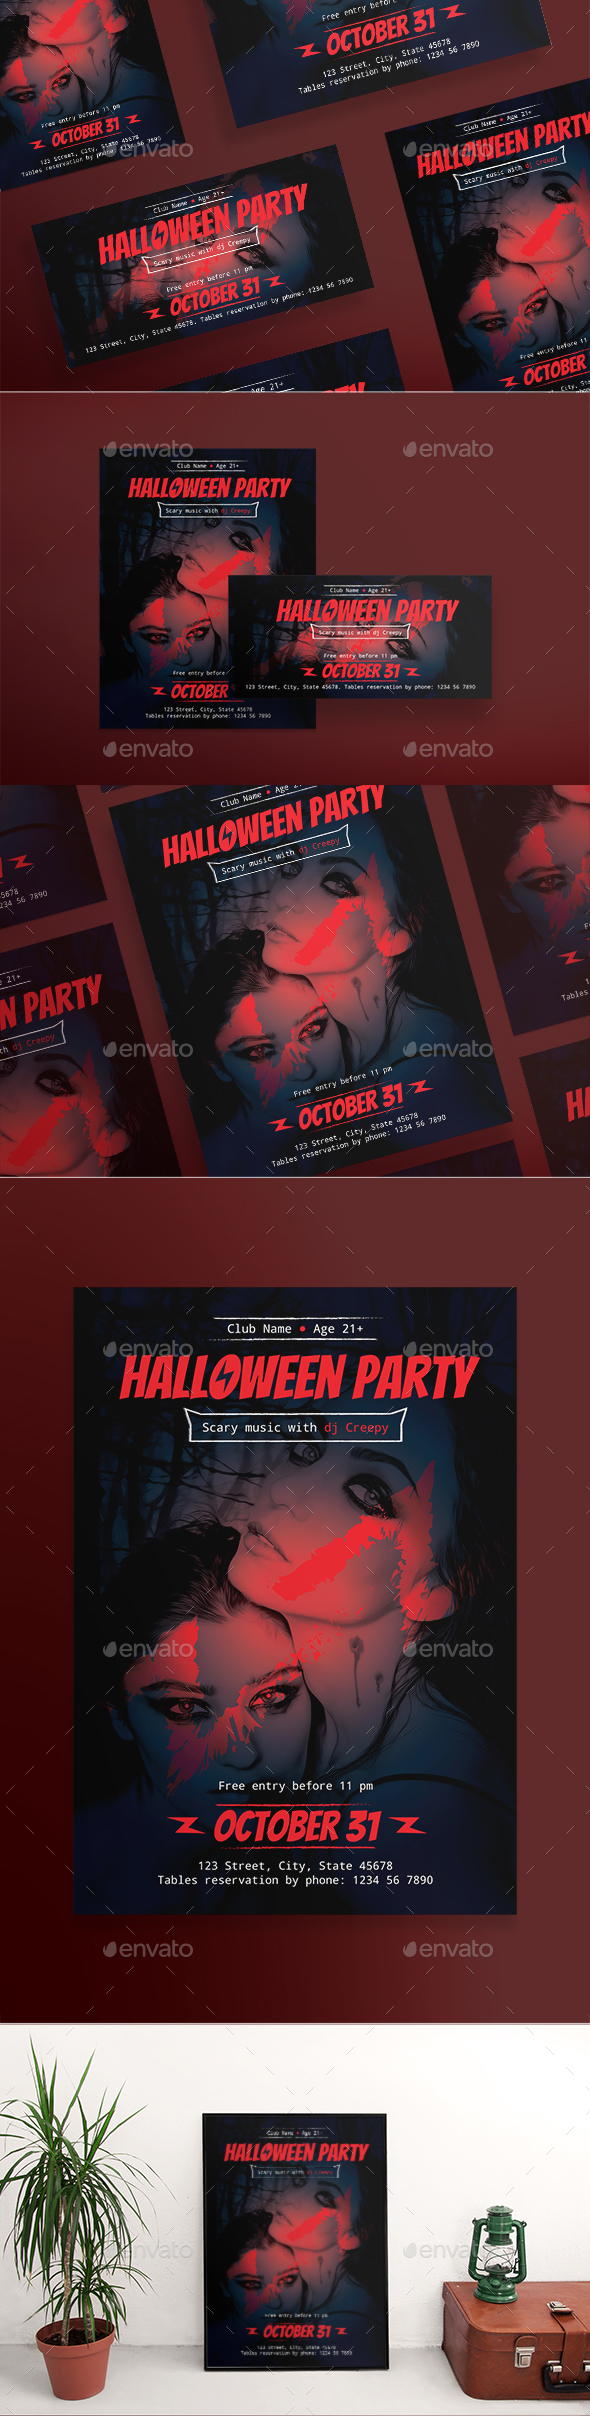 Halloween Party Flyers - Clubs & Parties Events